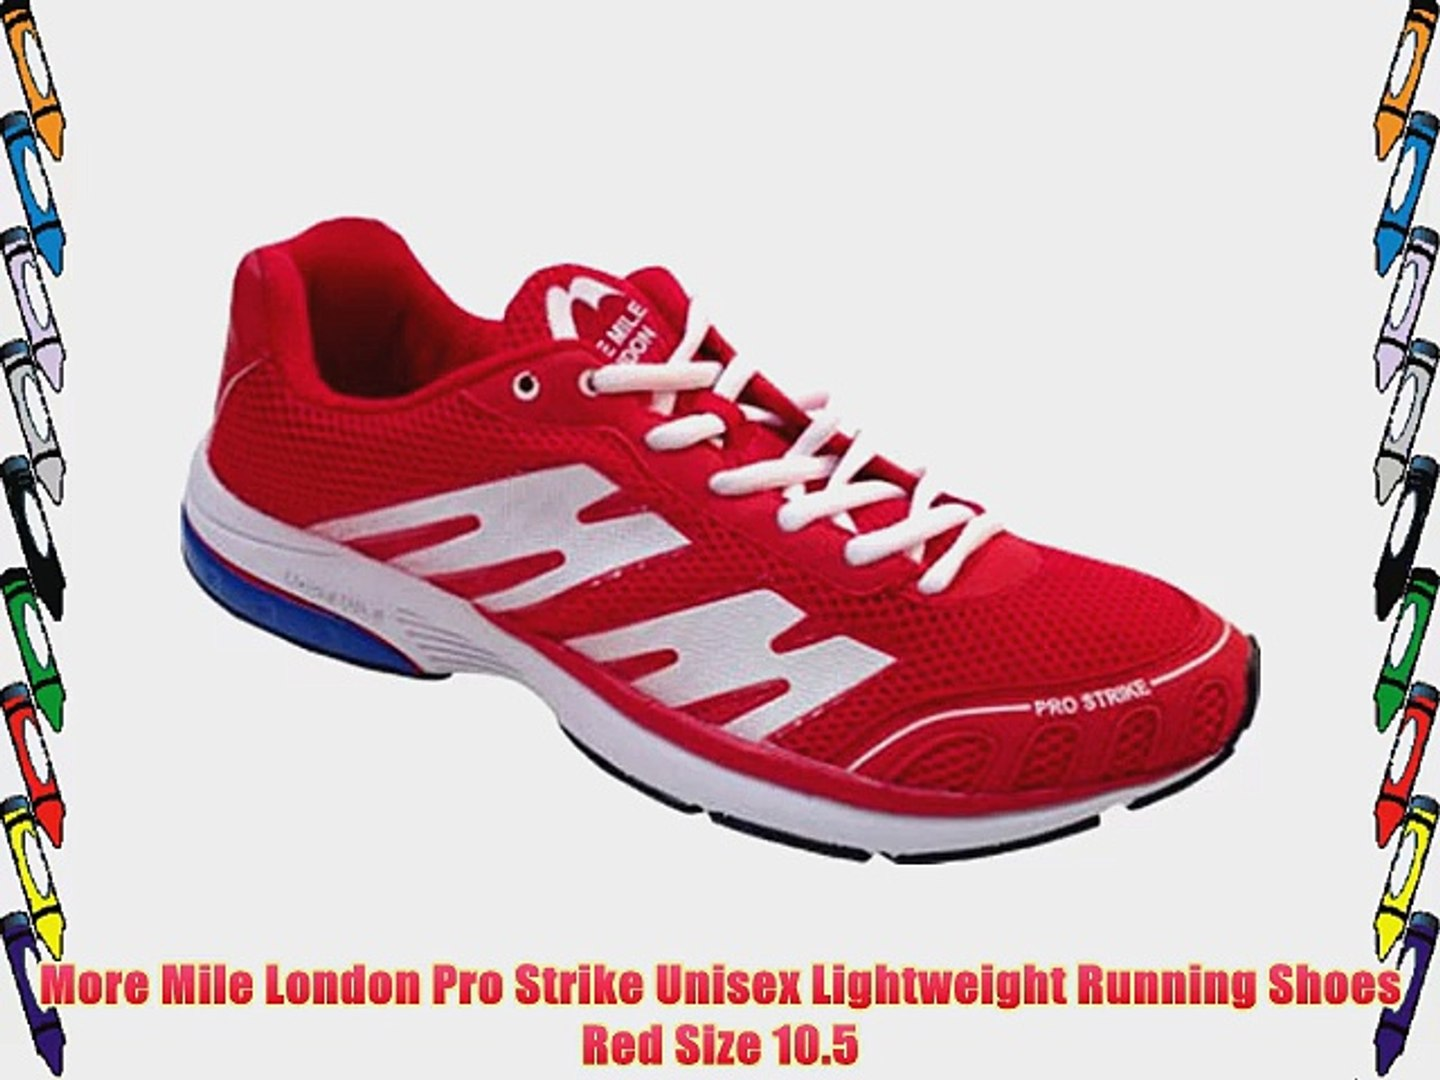 More Mile London Pro Strike Unisex Lightweight Running Shoes Red Size 10.5